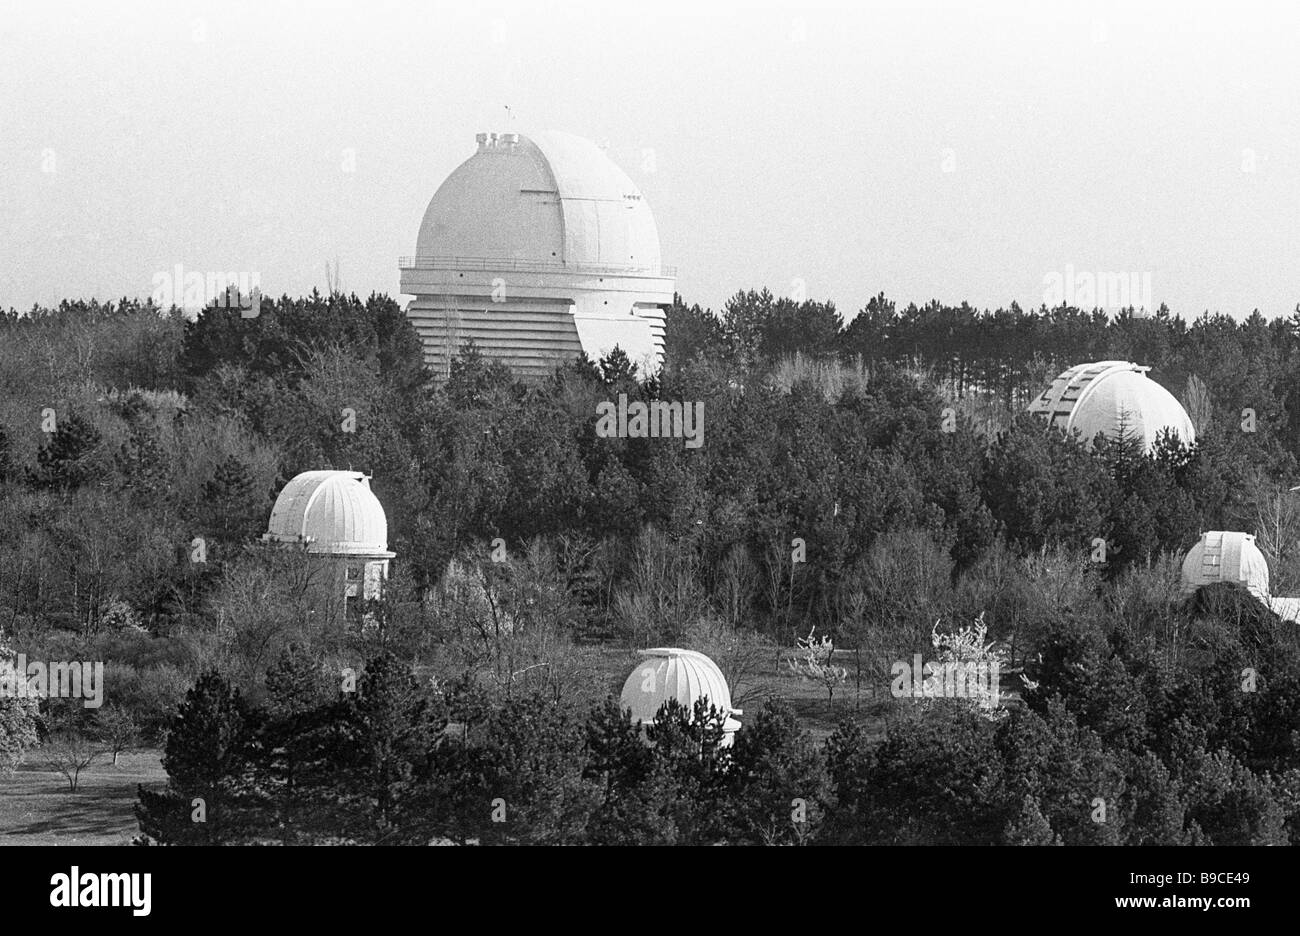 Crimean Astrophysical Observatory of the Russian Academy of Sciences - Stock Image